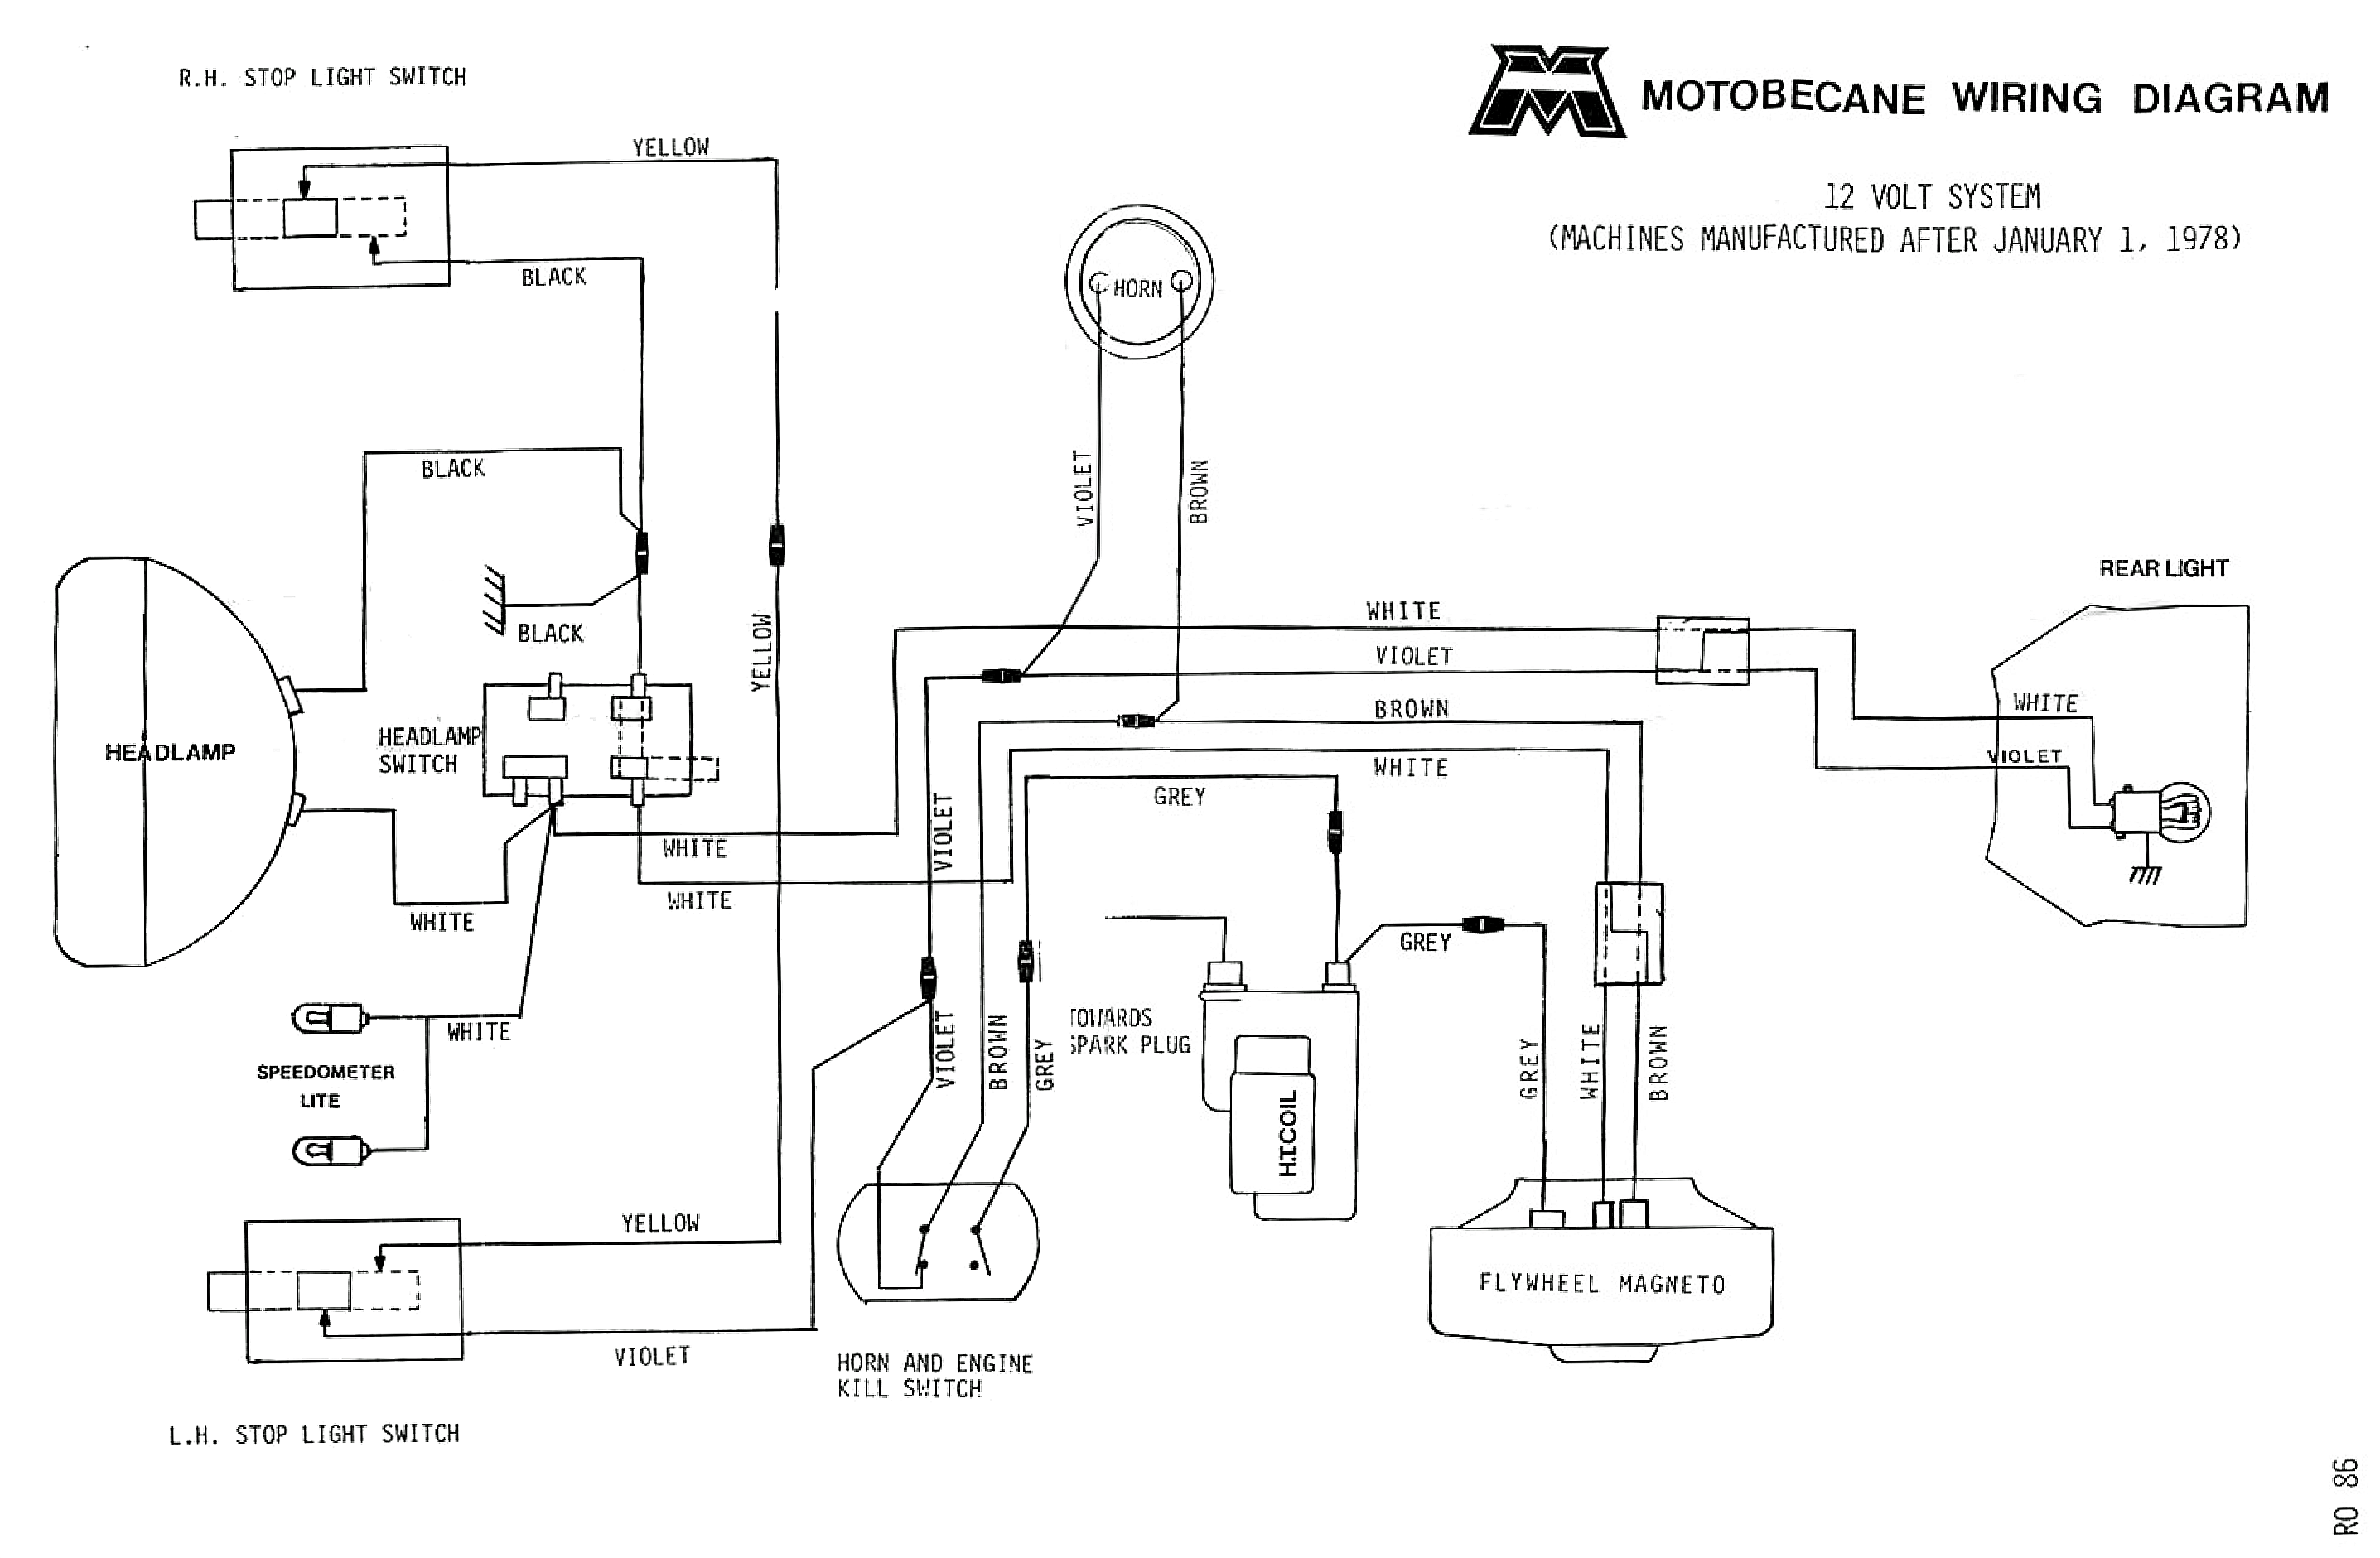 Motobecane Wiring Diagrams Mopedwiki Alternator Diagram Electrical Diagram